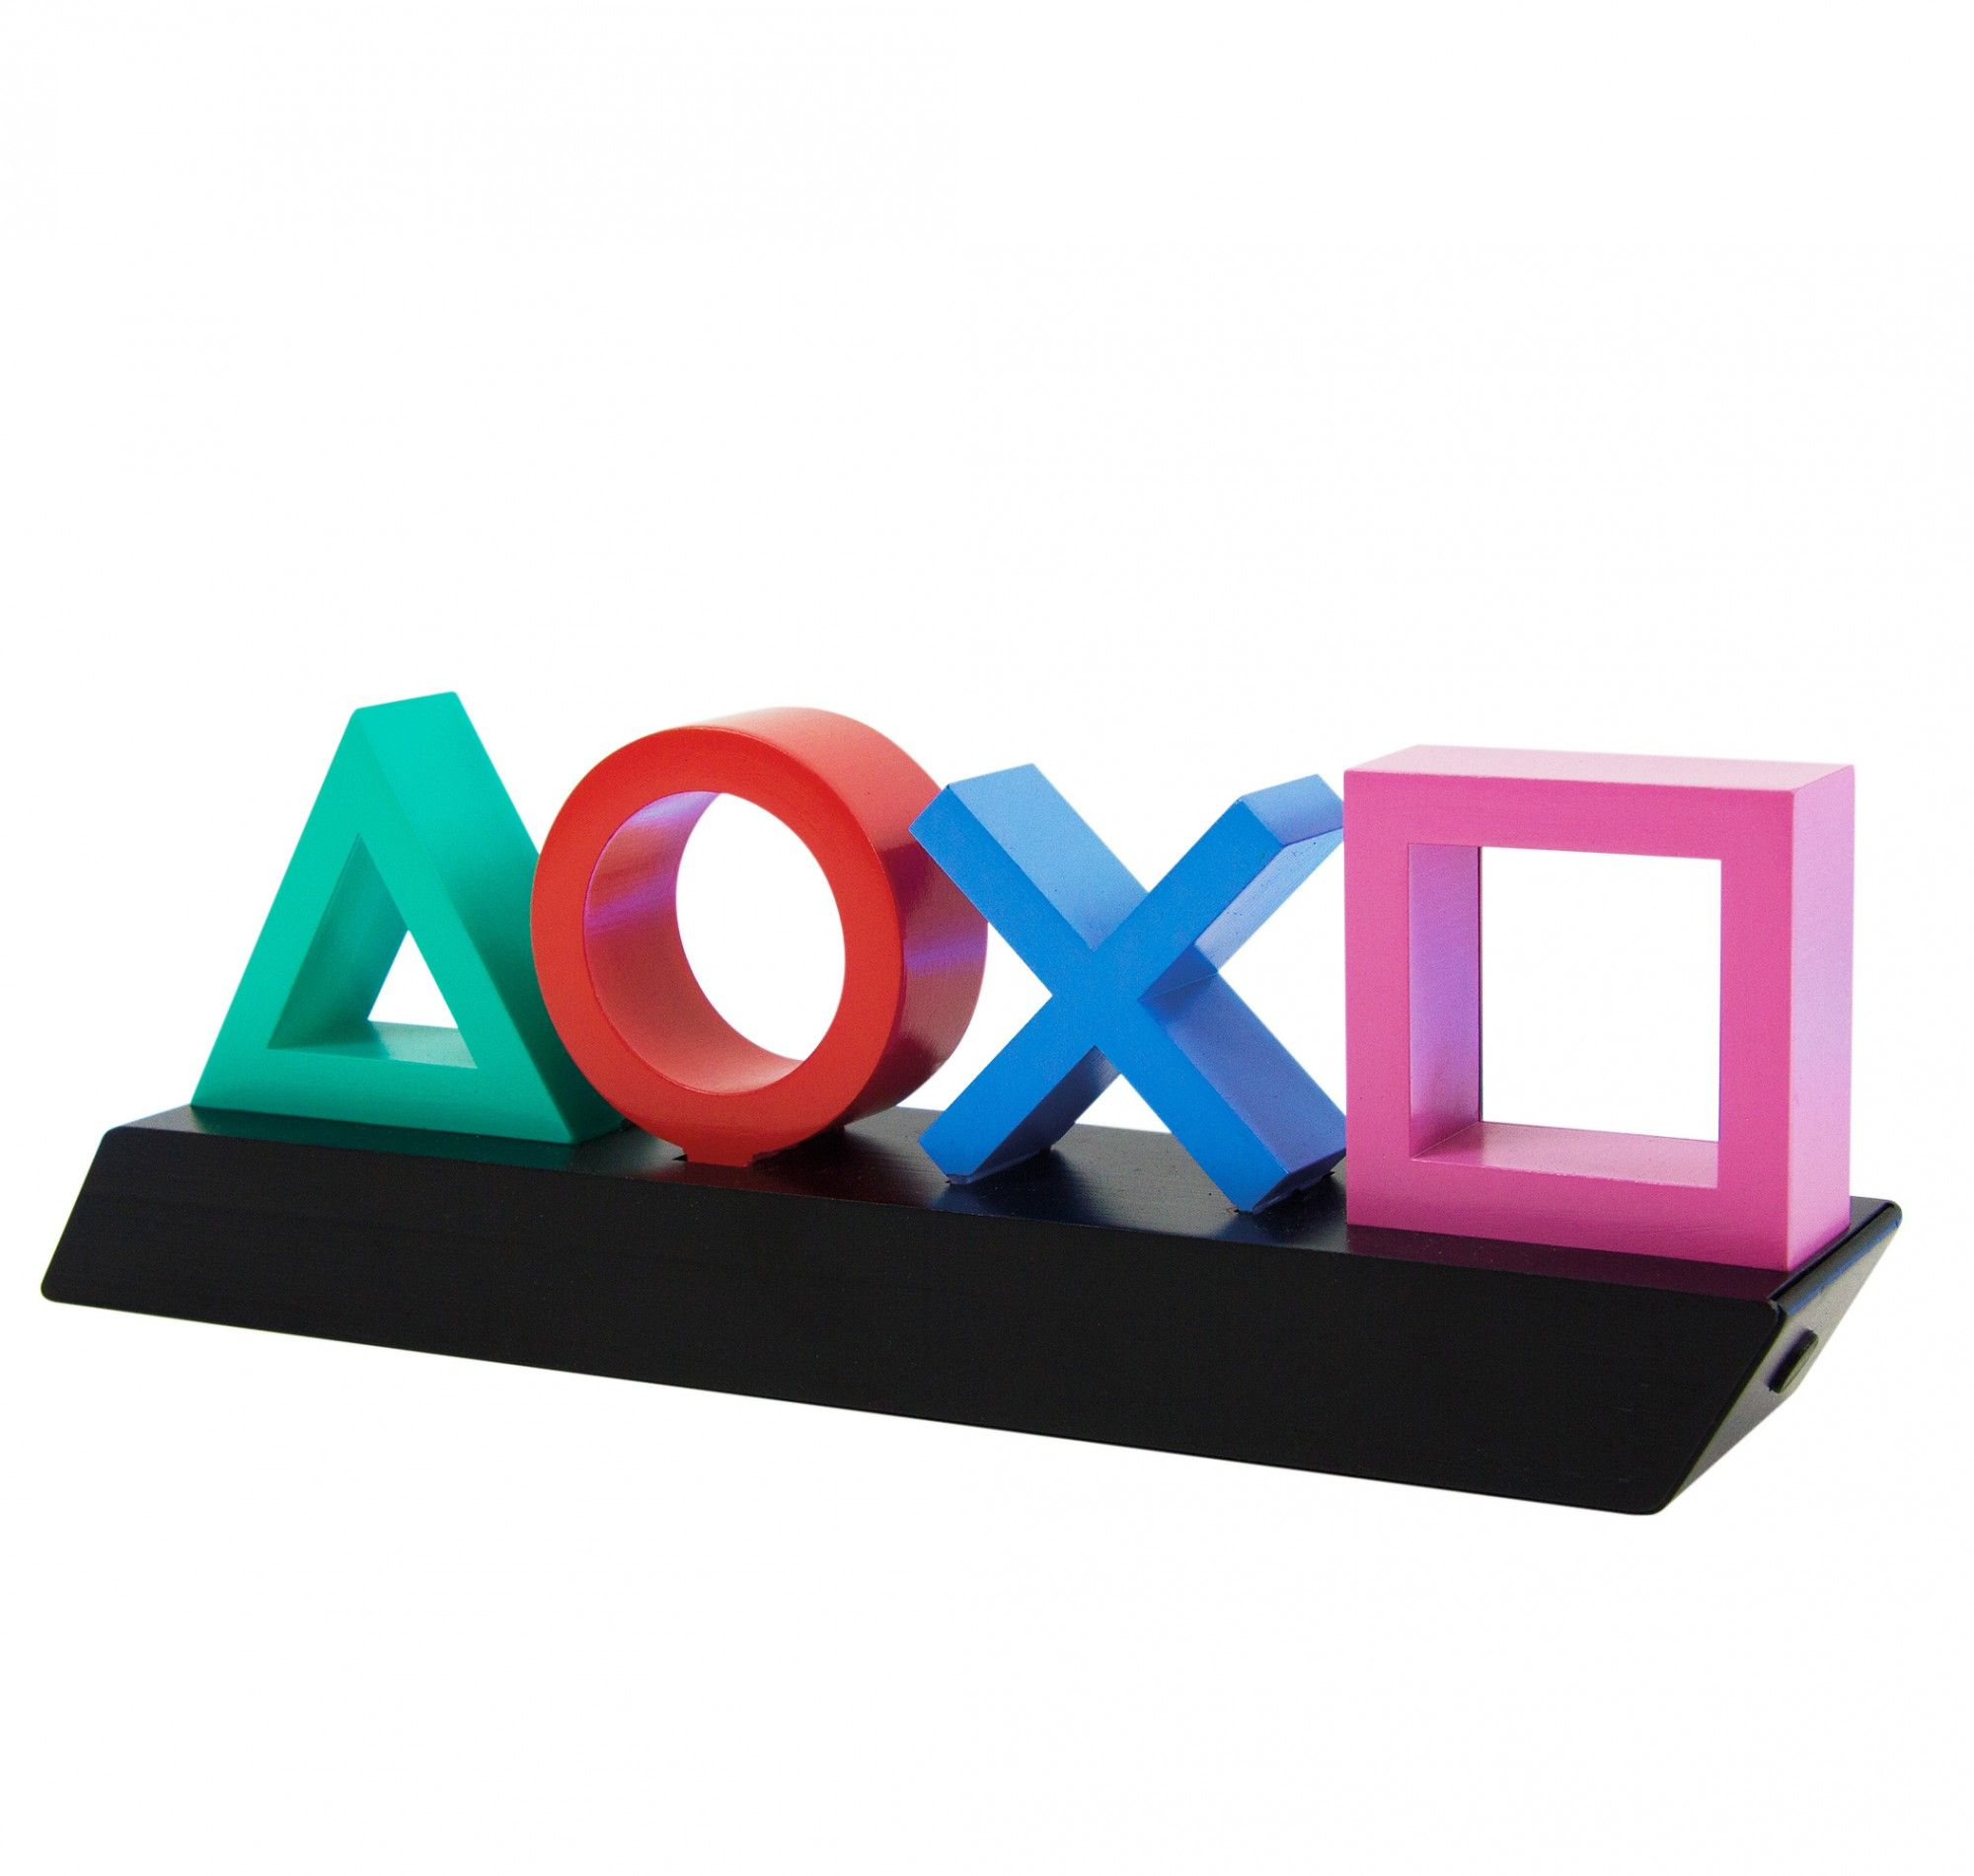 PlayStation Icons Light Playstation, Icon, My beau